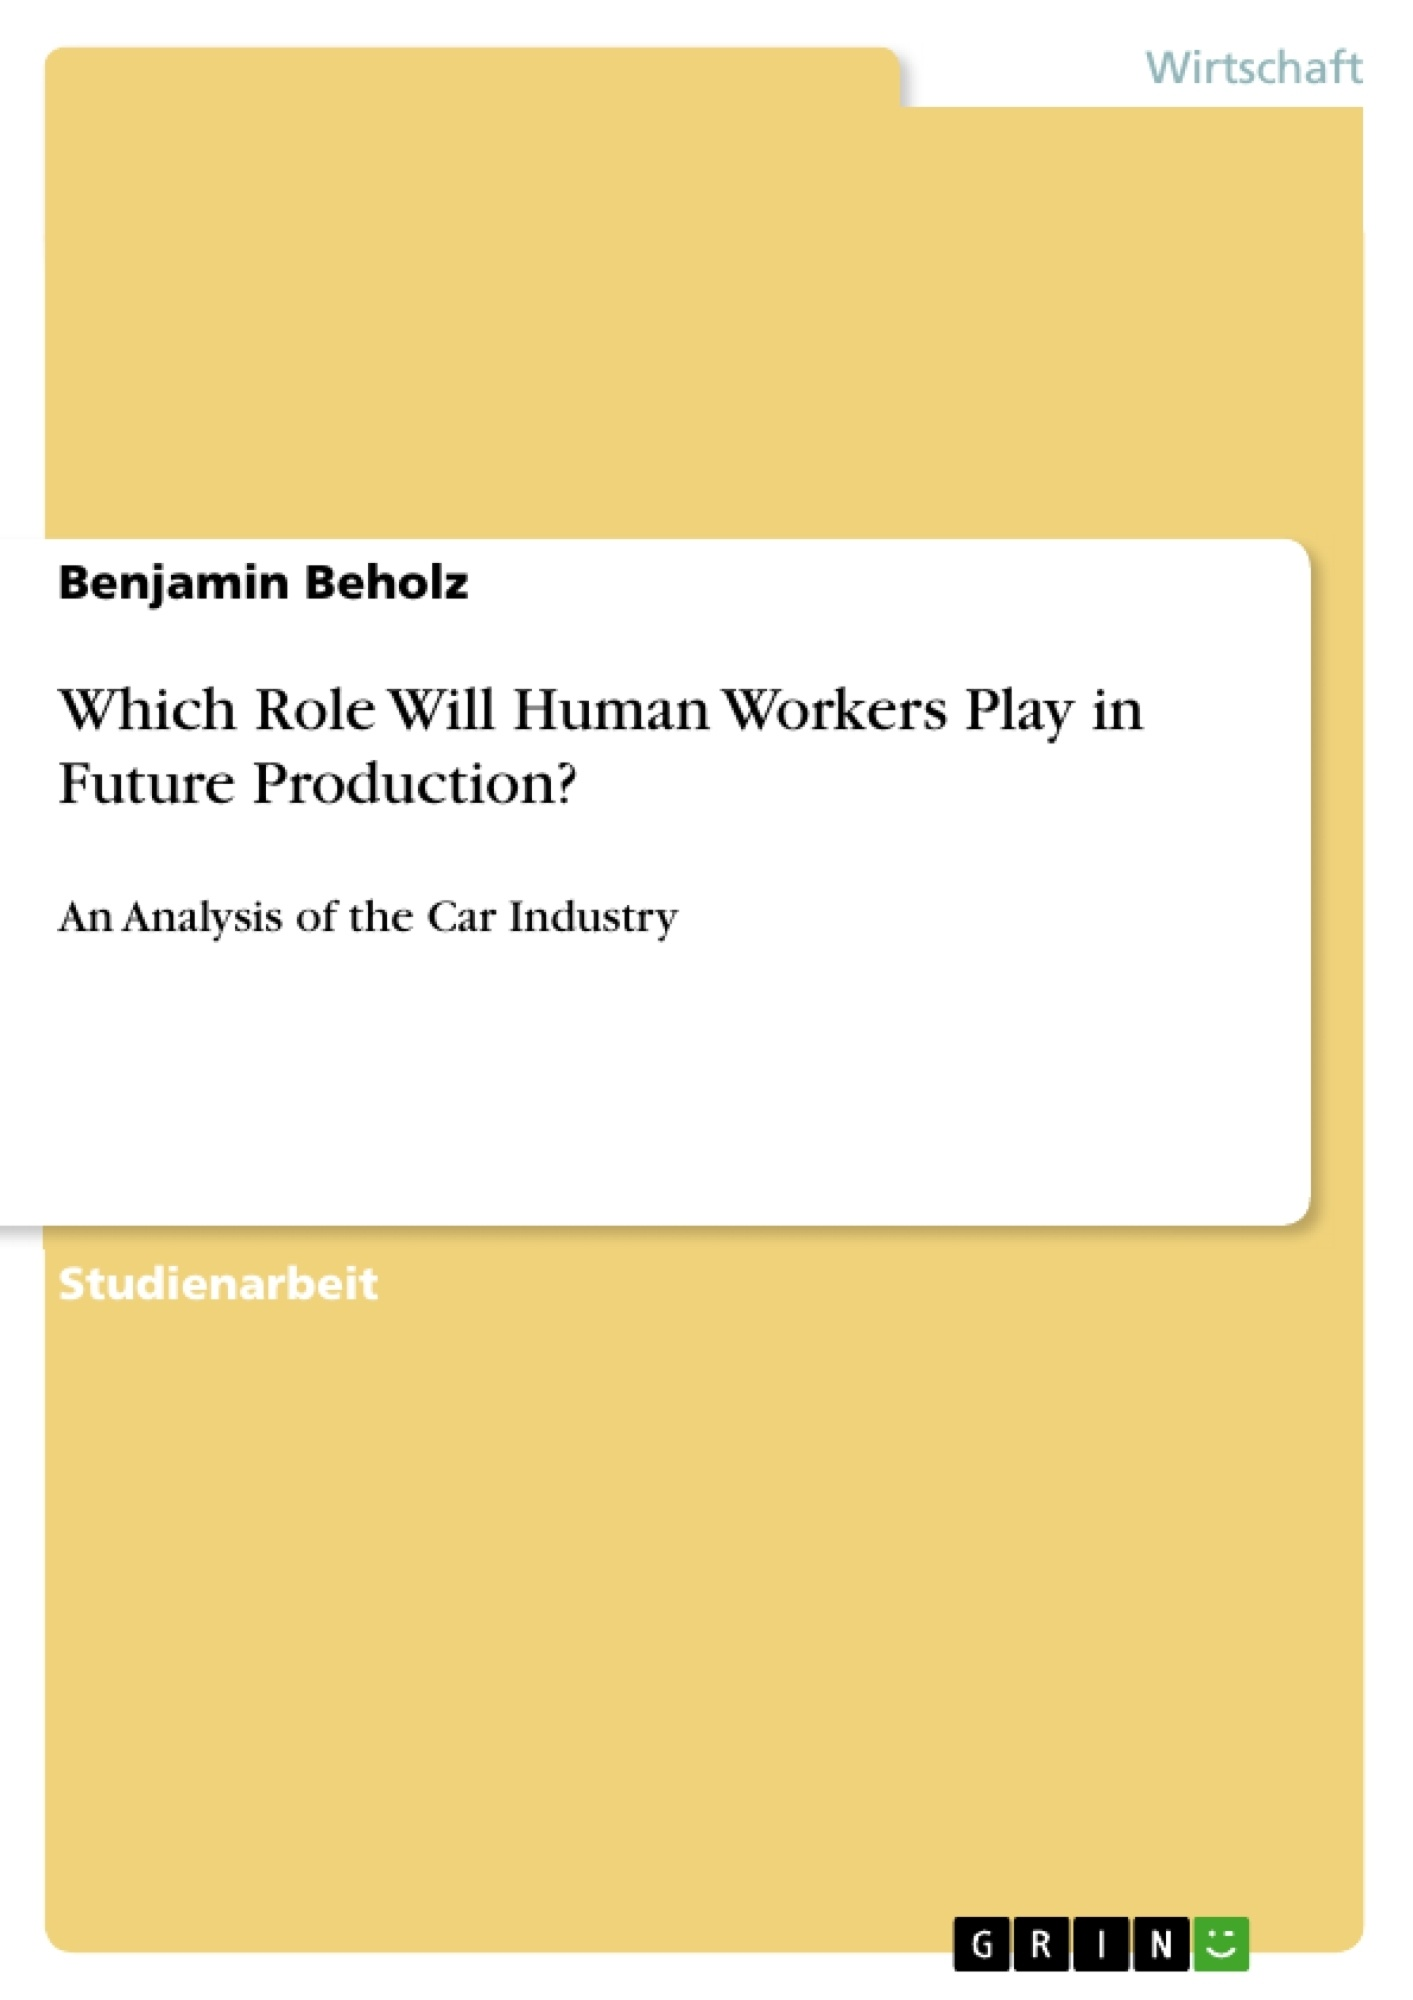 Titel: Which Role Will Human Workers Play in Future Production?